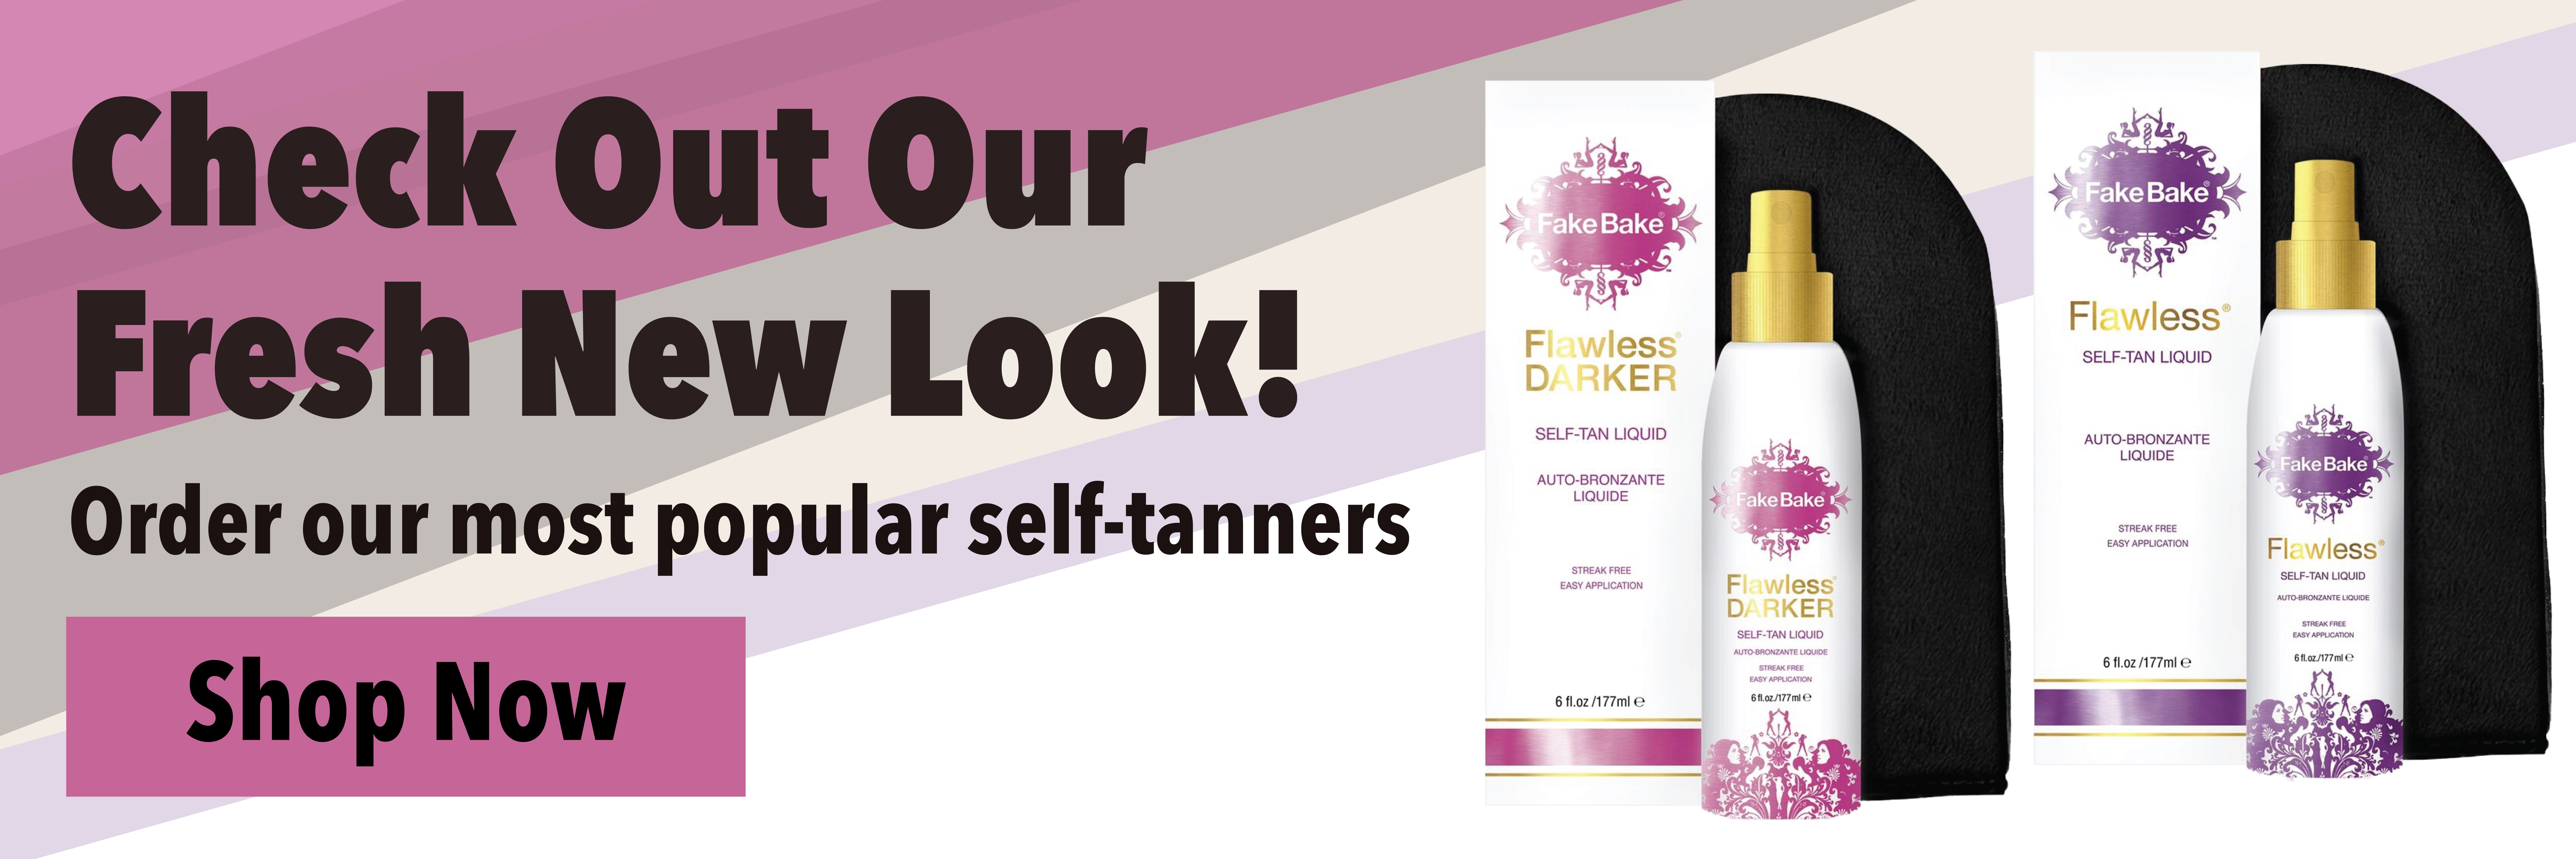 New packaging for Fake Bake Flawless & Flawless Darker